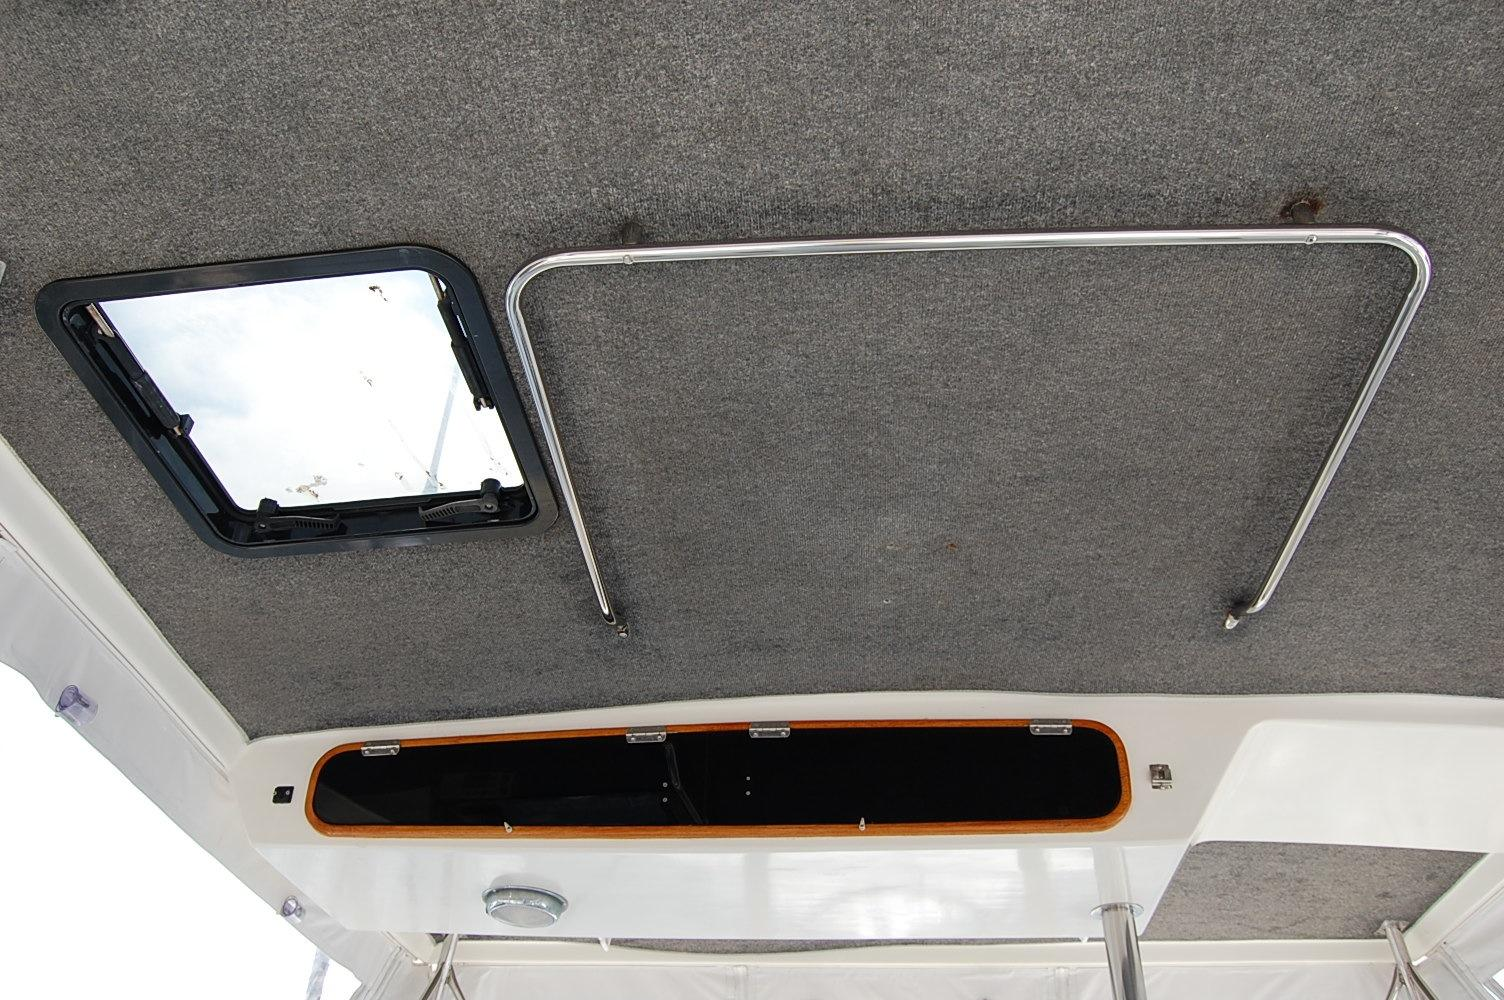 48' Ocean Yachts Super Sport+Speakers Port Side